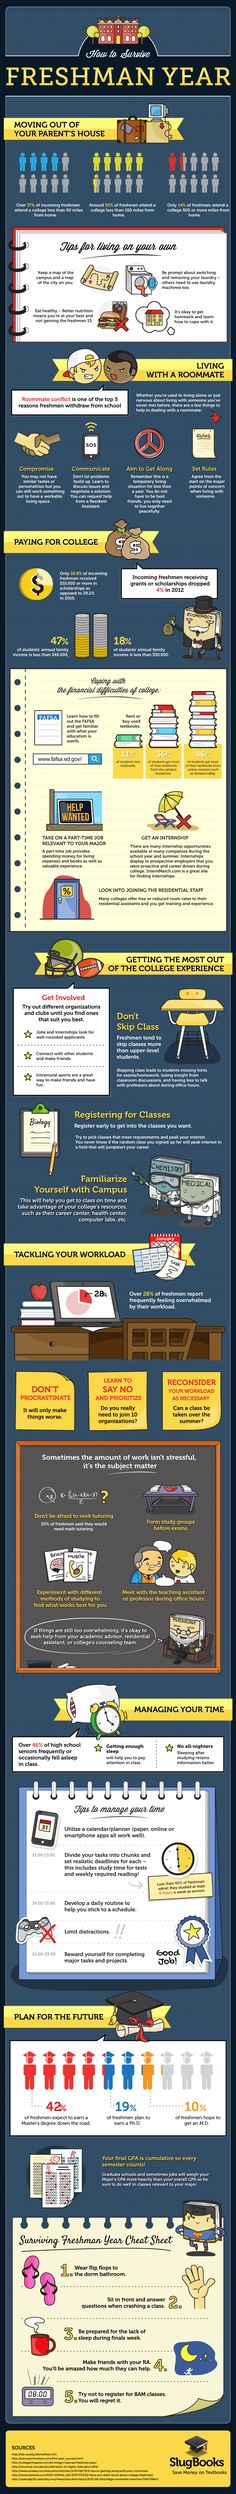 Surviving Freshman Year infographic